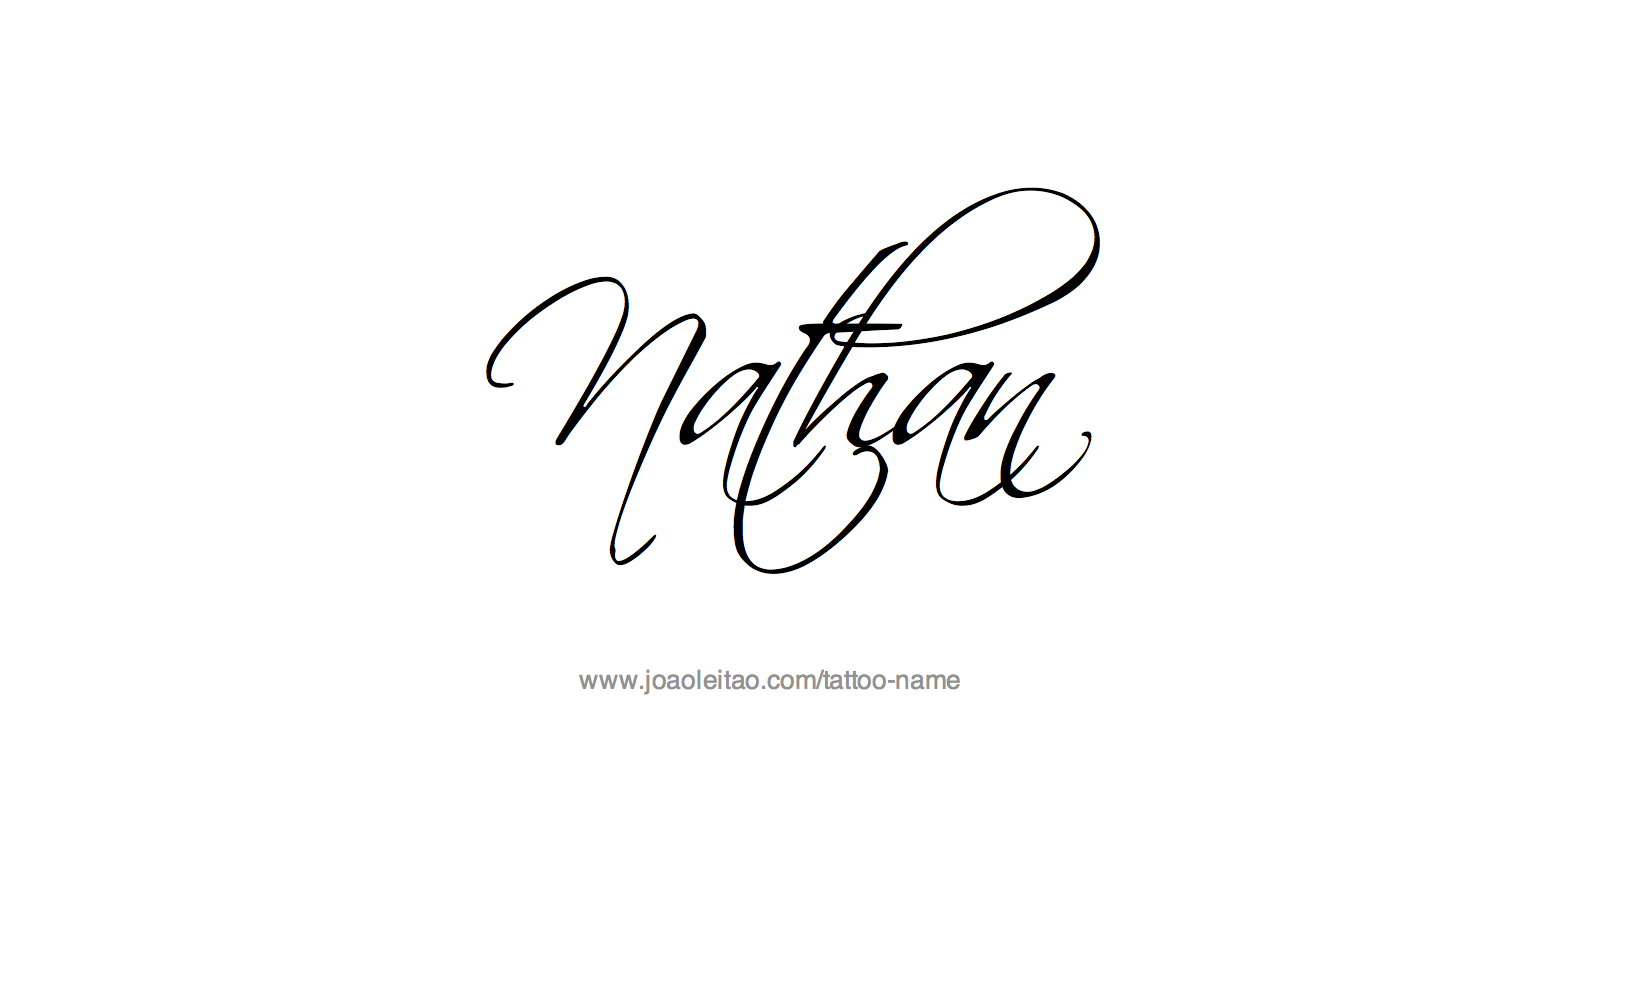 Nathan name tattoo designs tattoo designs tattoo and for Name style design